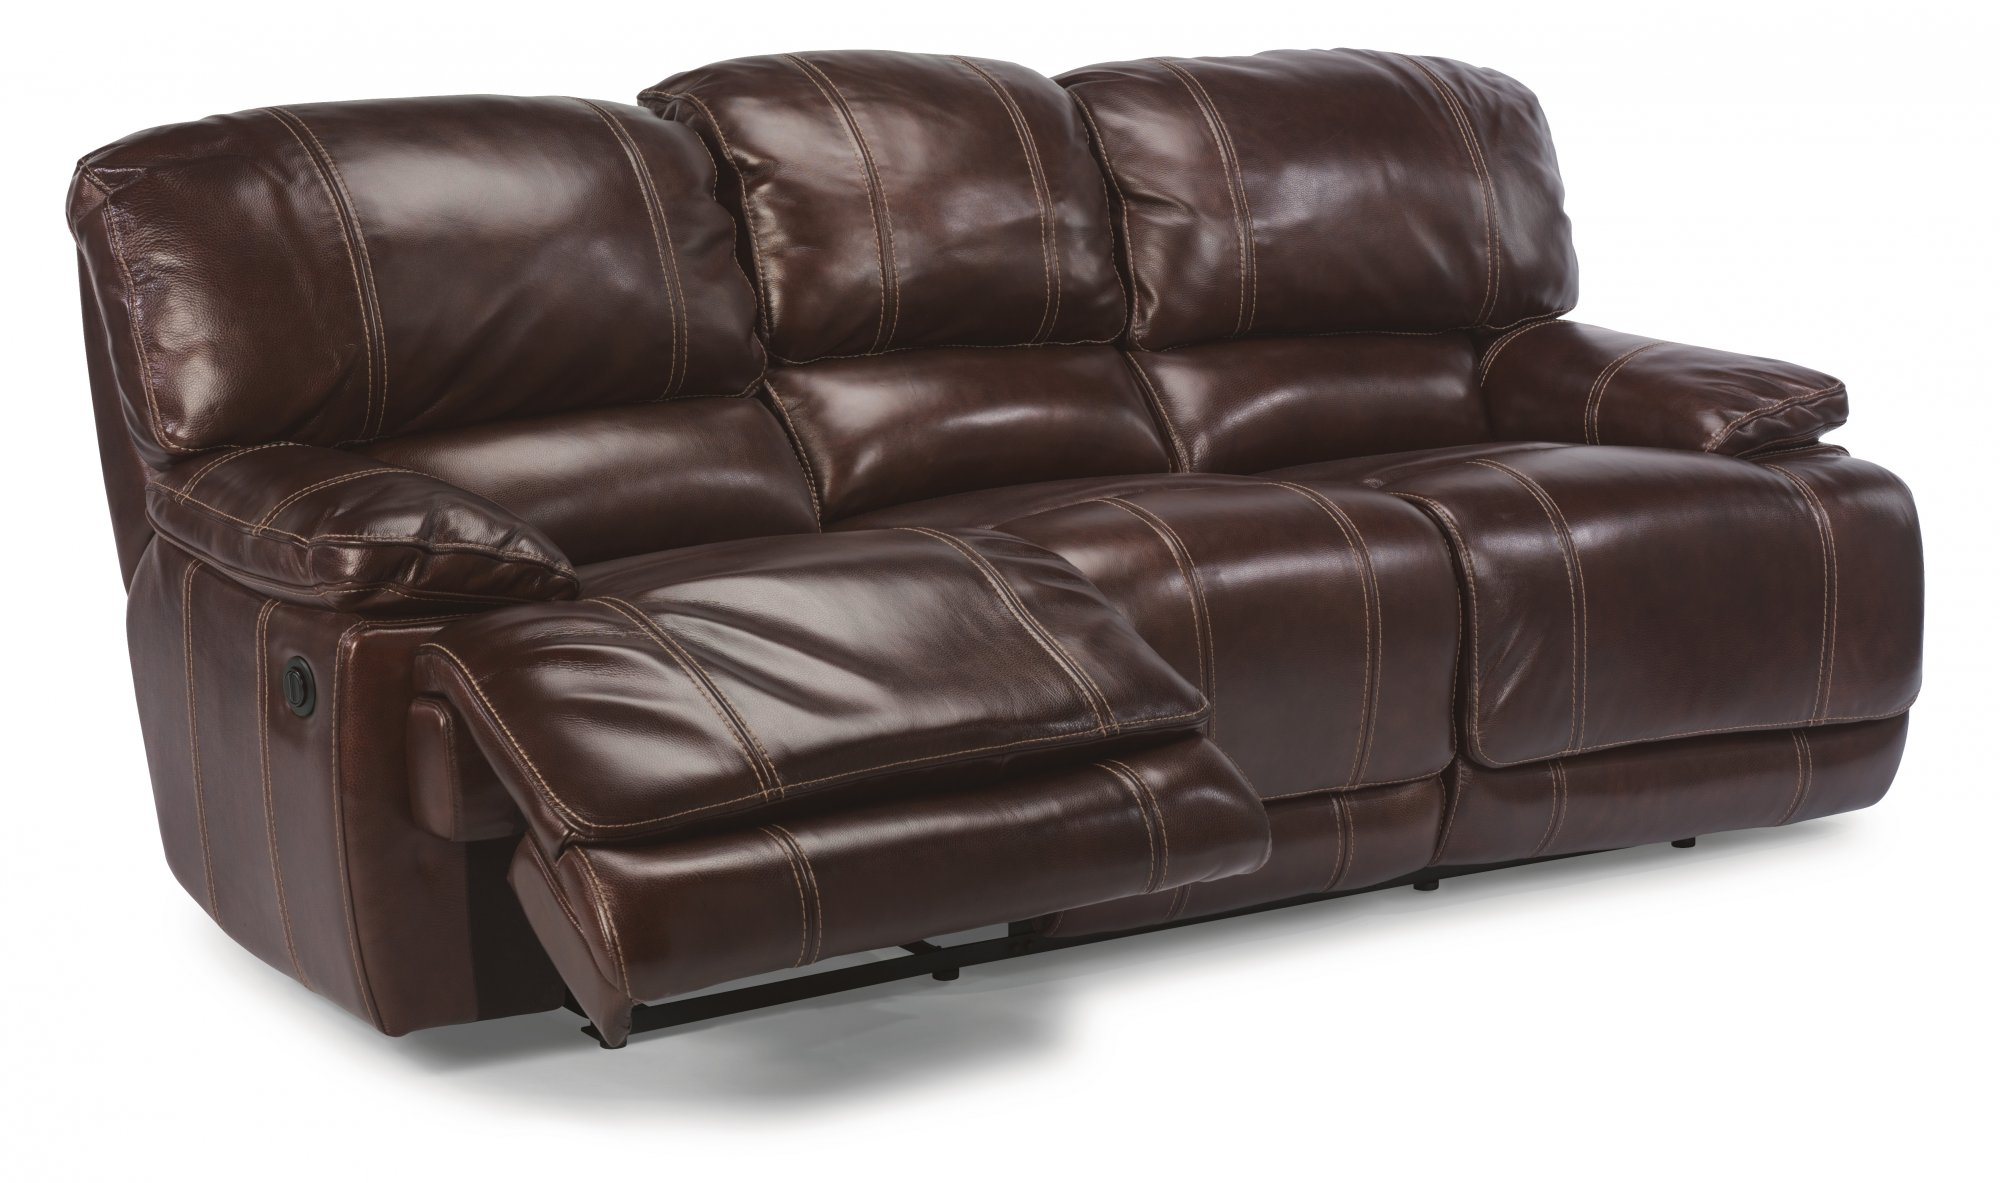 flexsteel double reclining sofa reviews leather sleeping belmont com share via email download a high resolution image